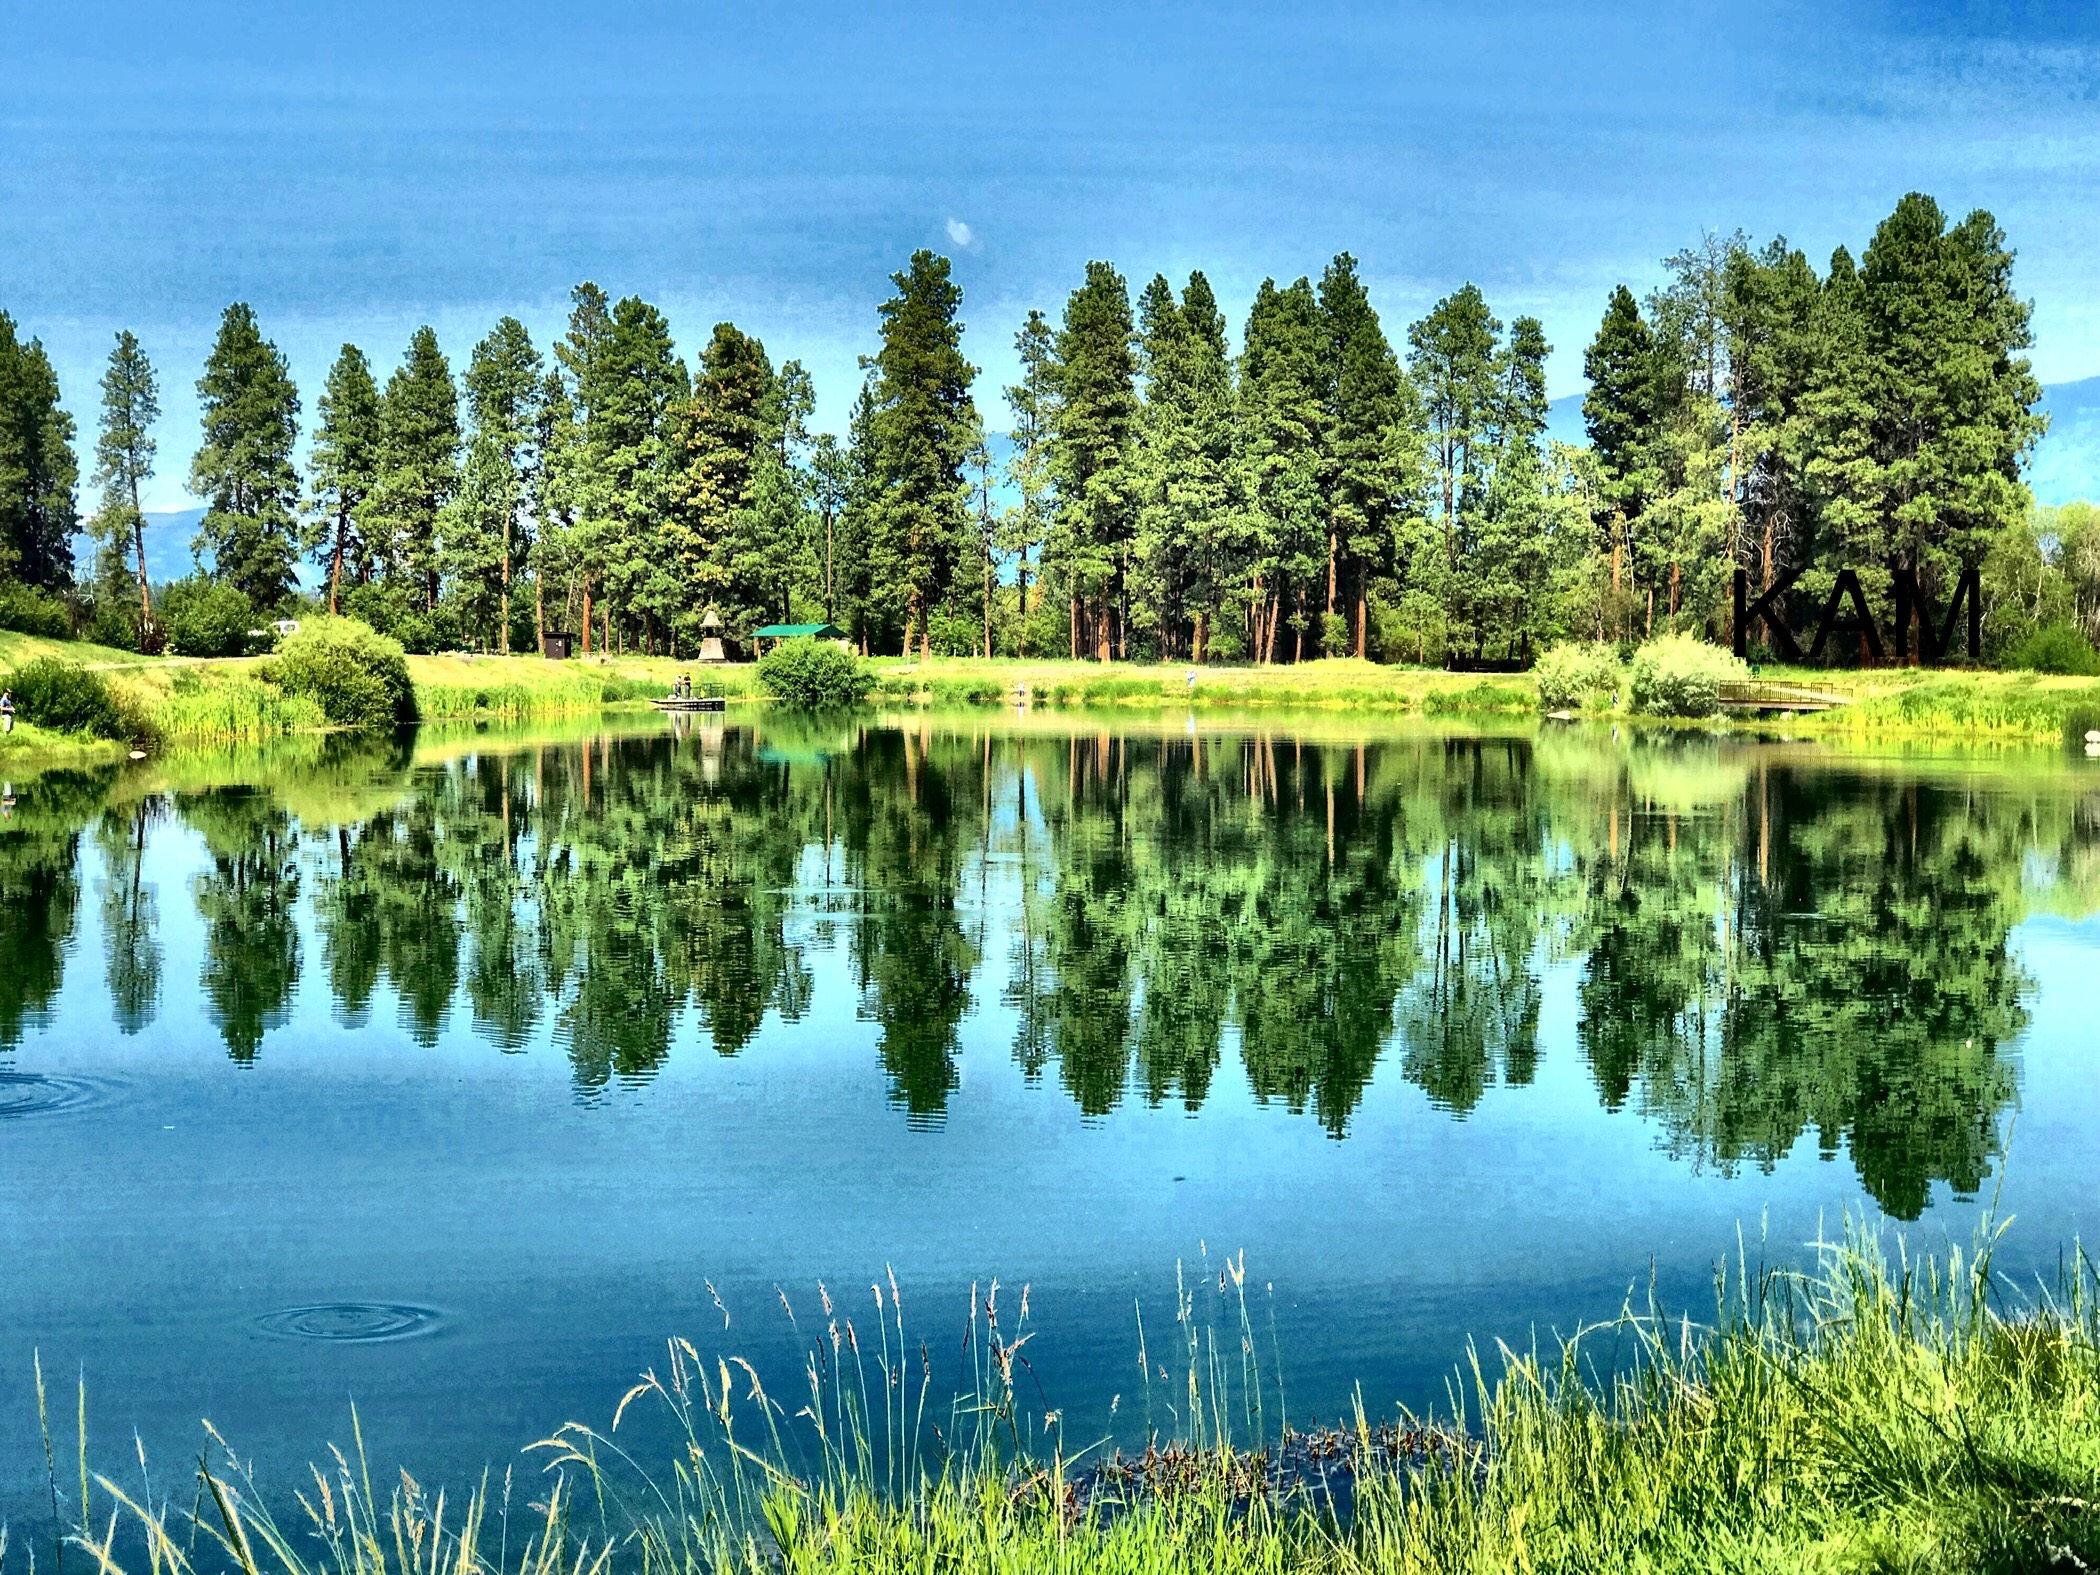 Photo of a lake and trees